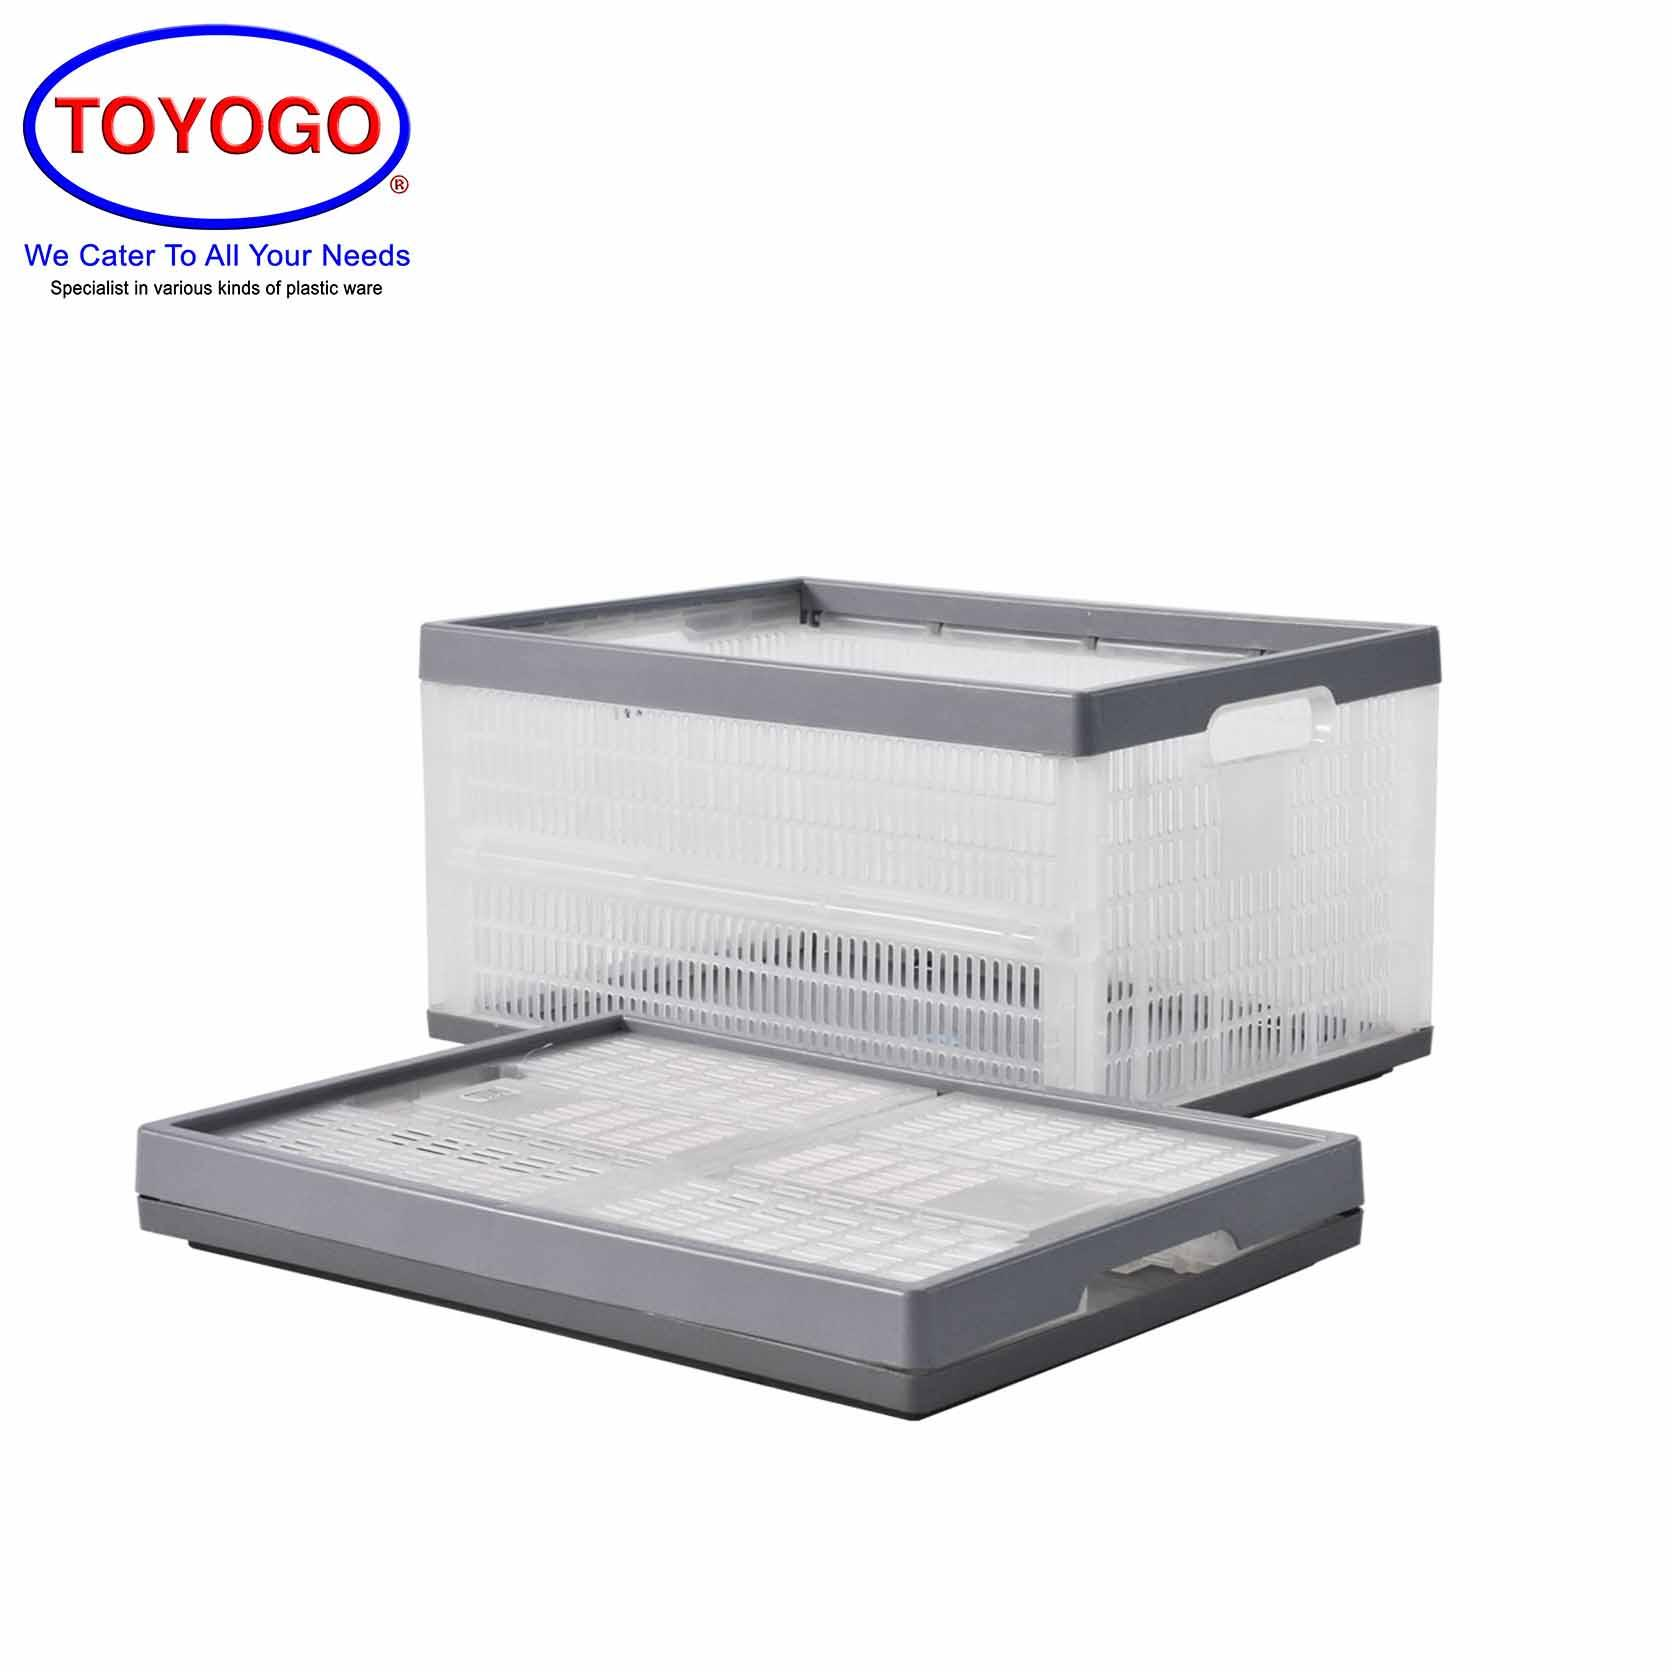 Toyogo Collapsible Crate (7407)